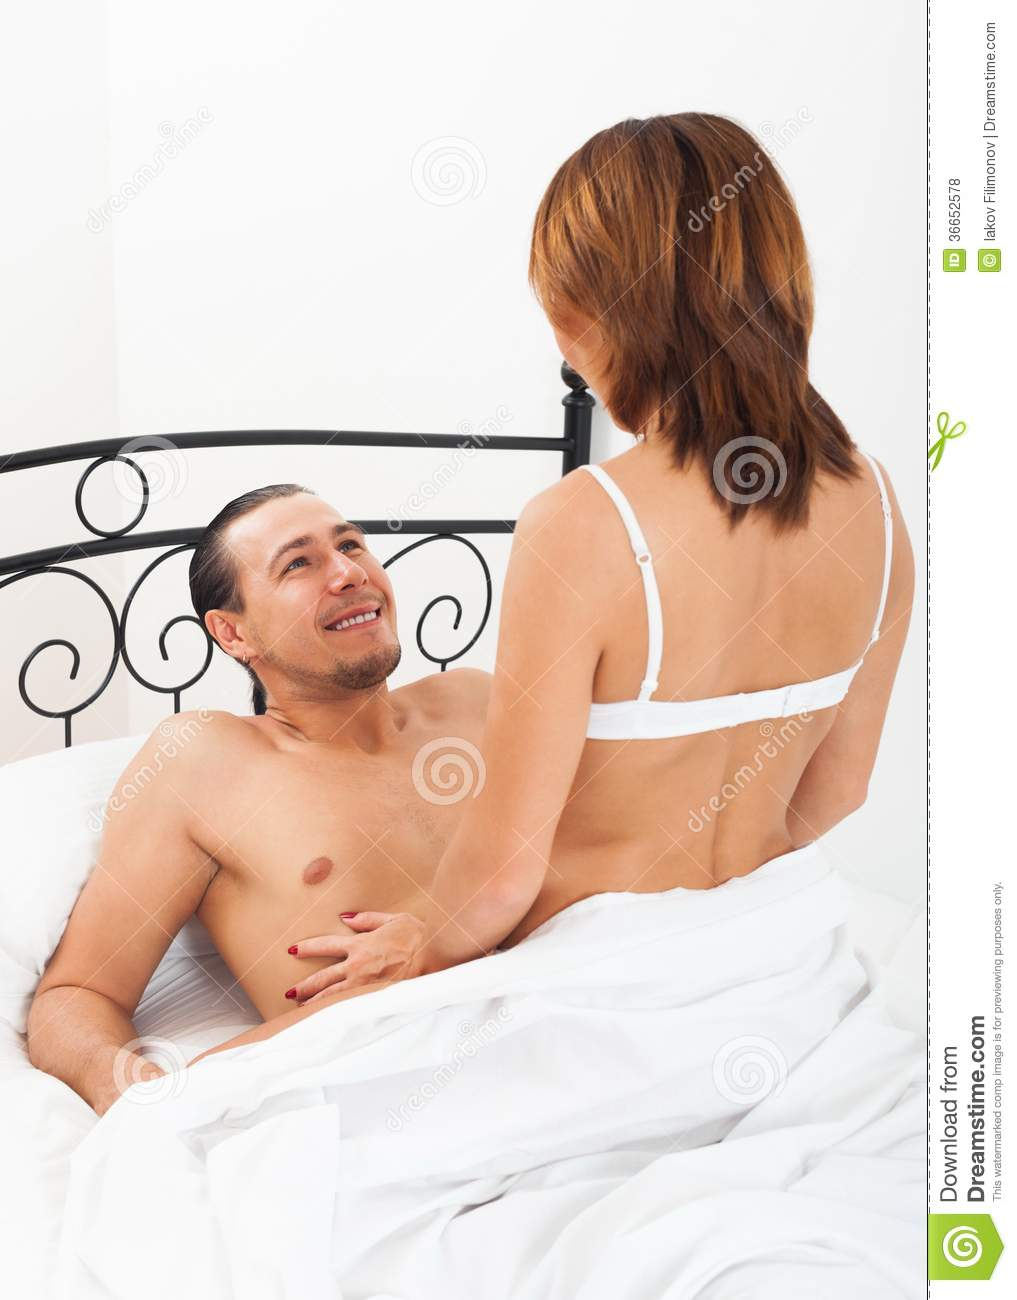 Men And Women In Bed 7